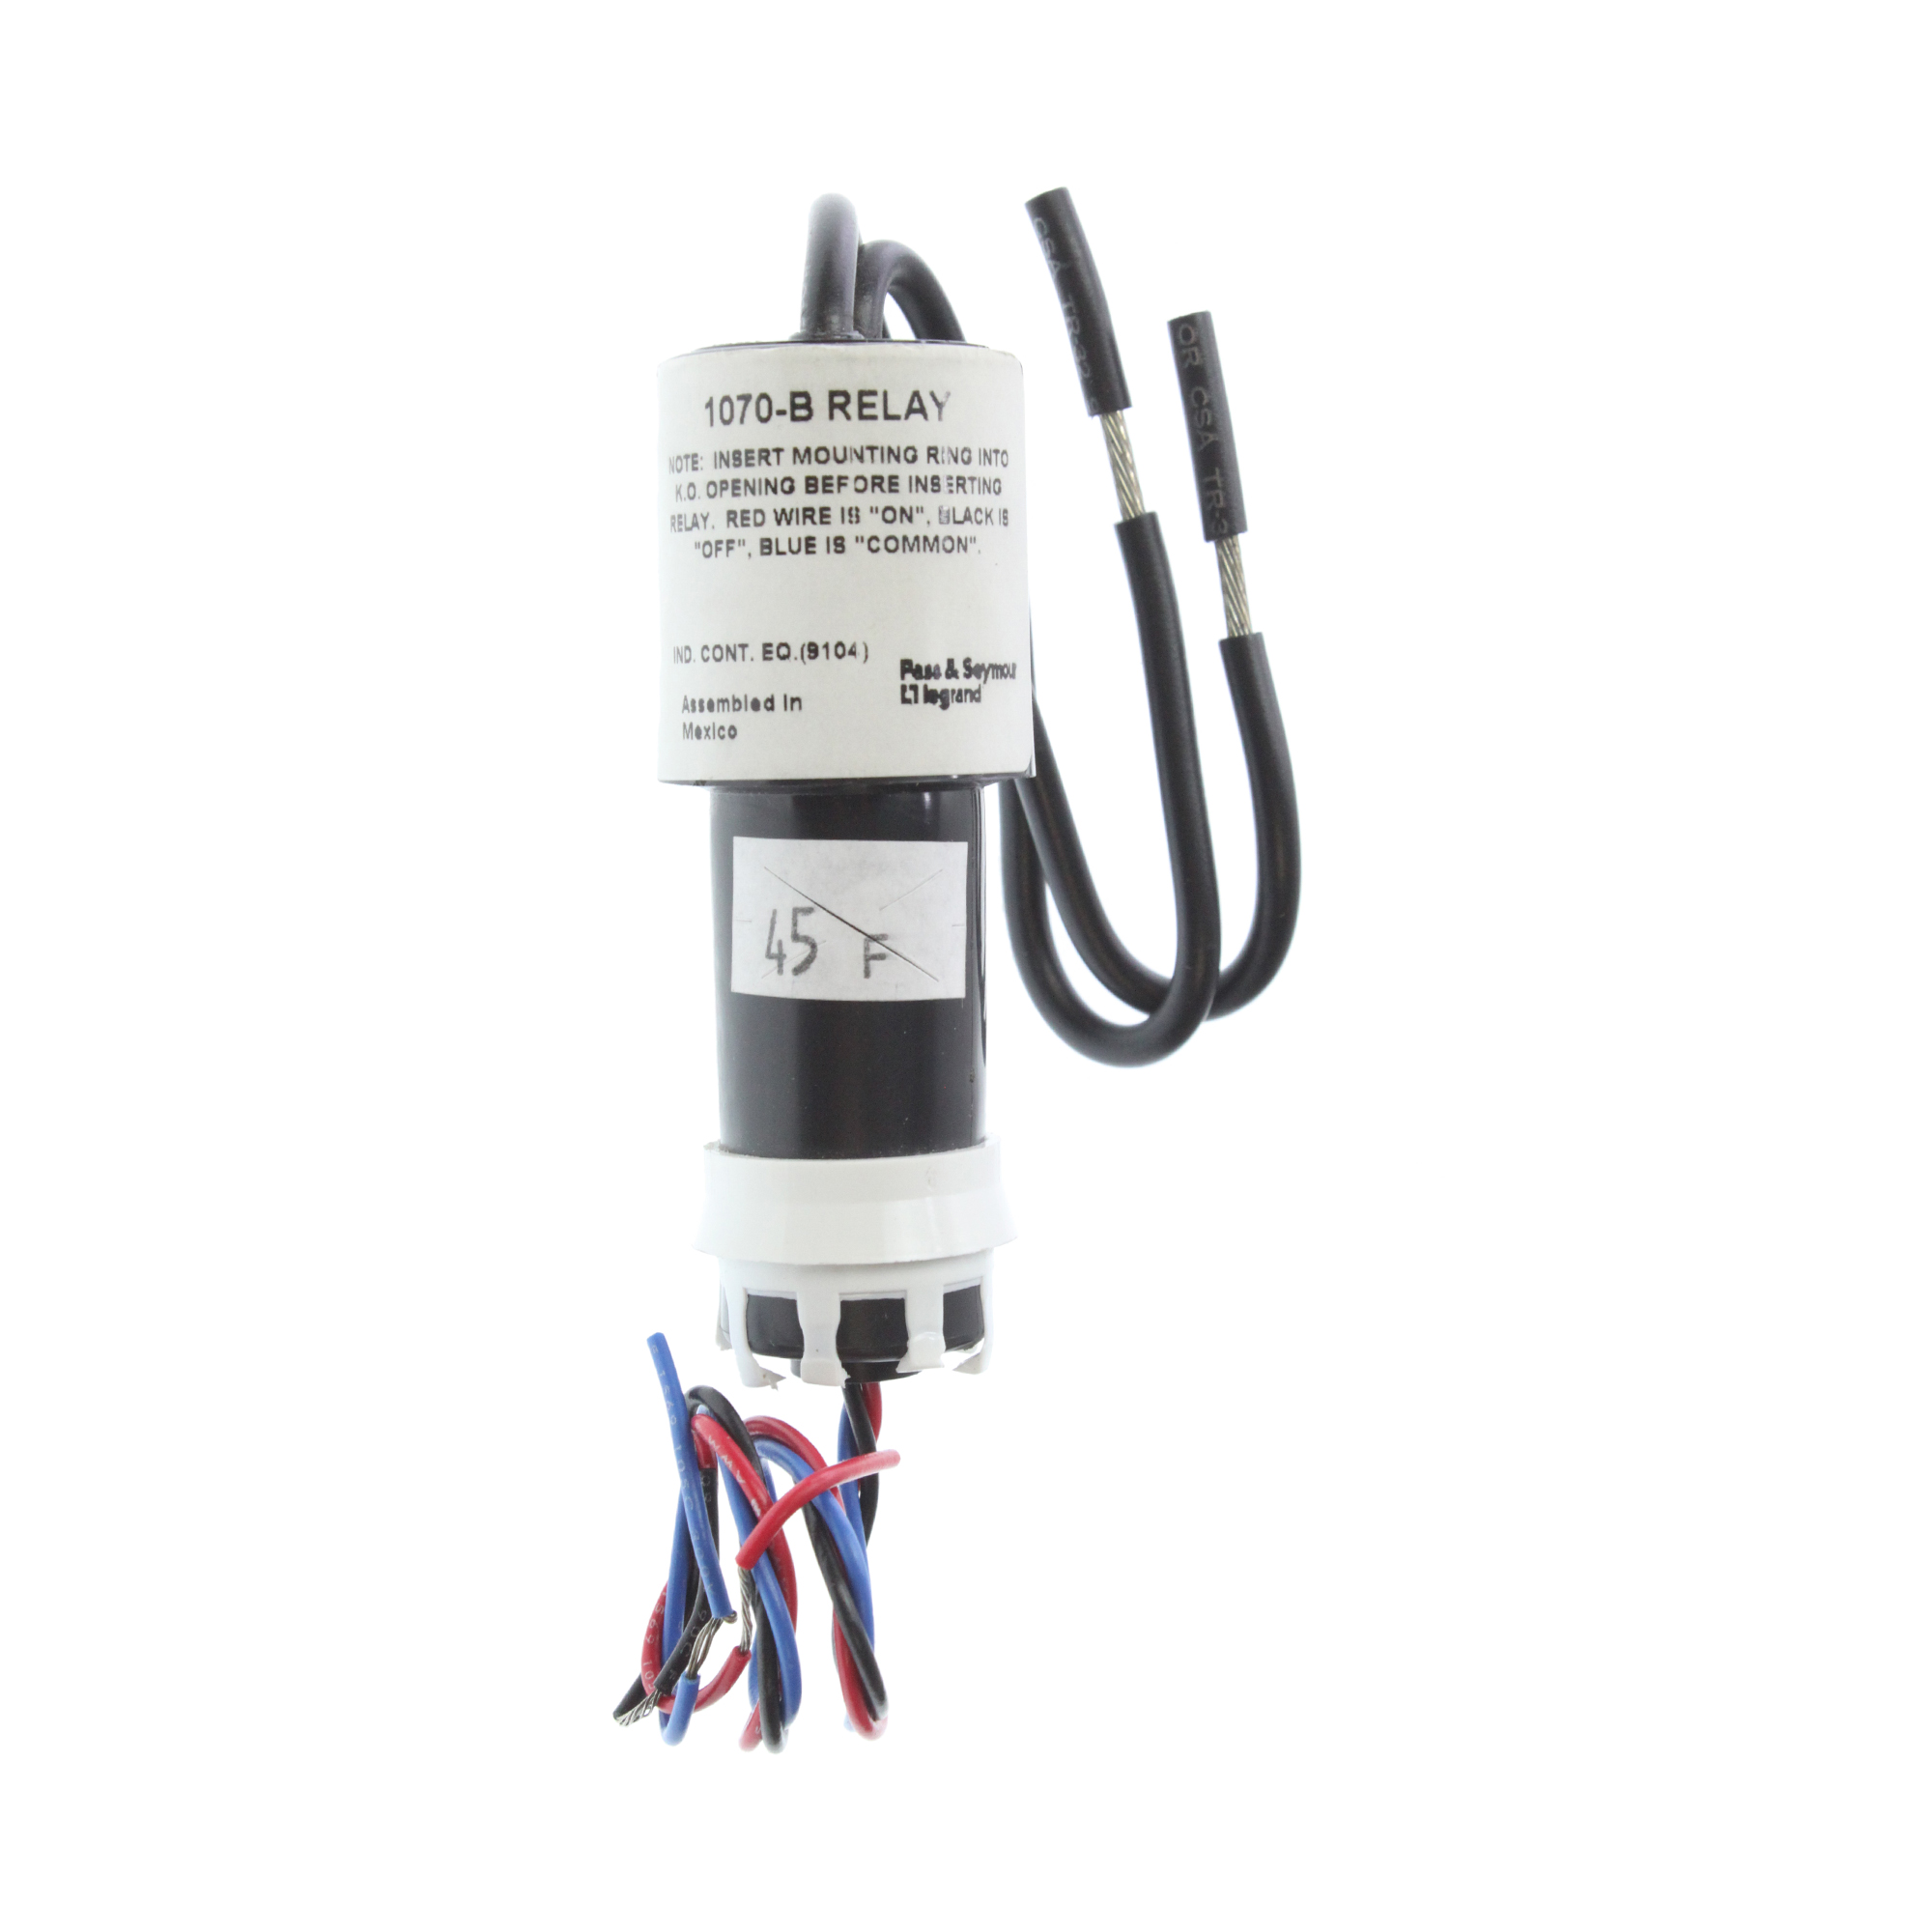 120 Volt Relay 20 Amp Compare Prices At Nextag